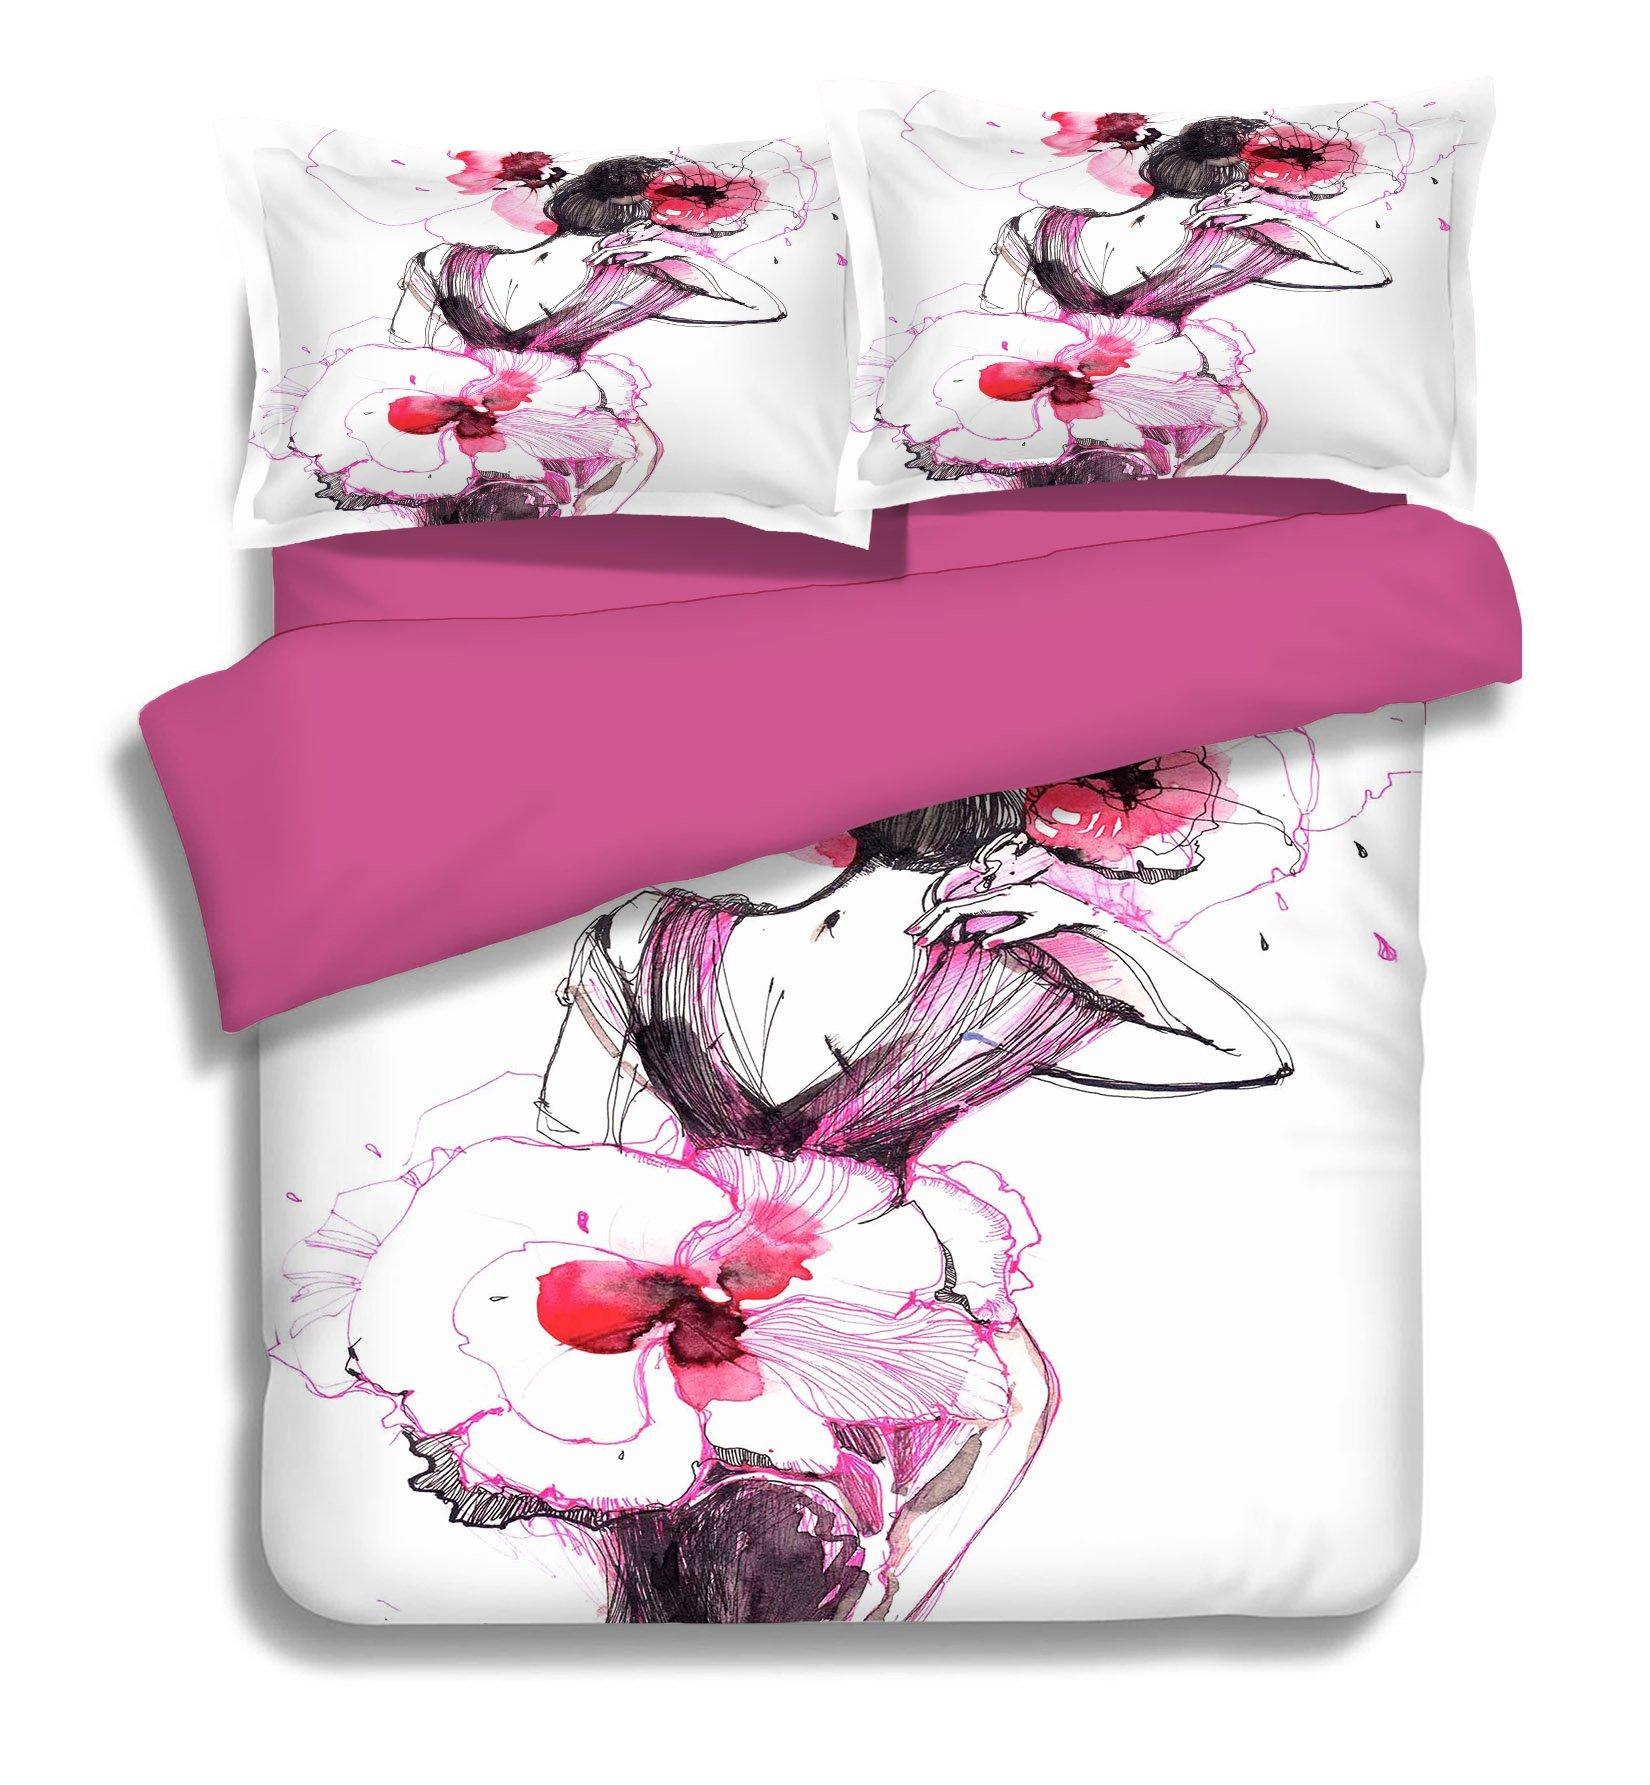 3D Design Model 288 Bed Pillowcases Quilt